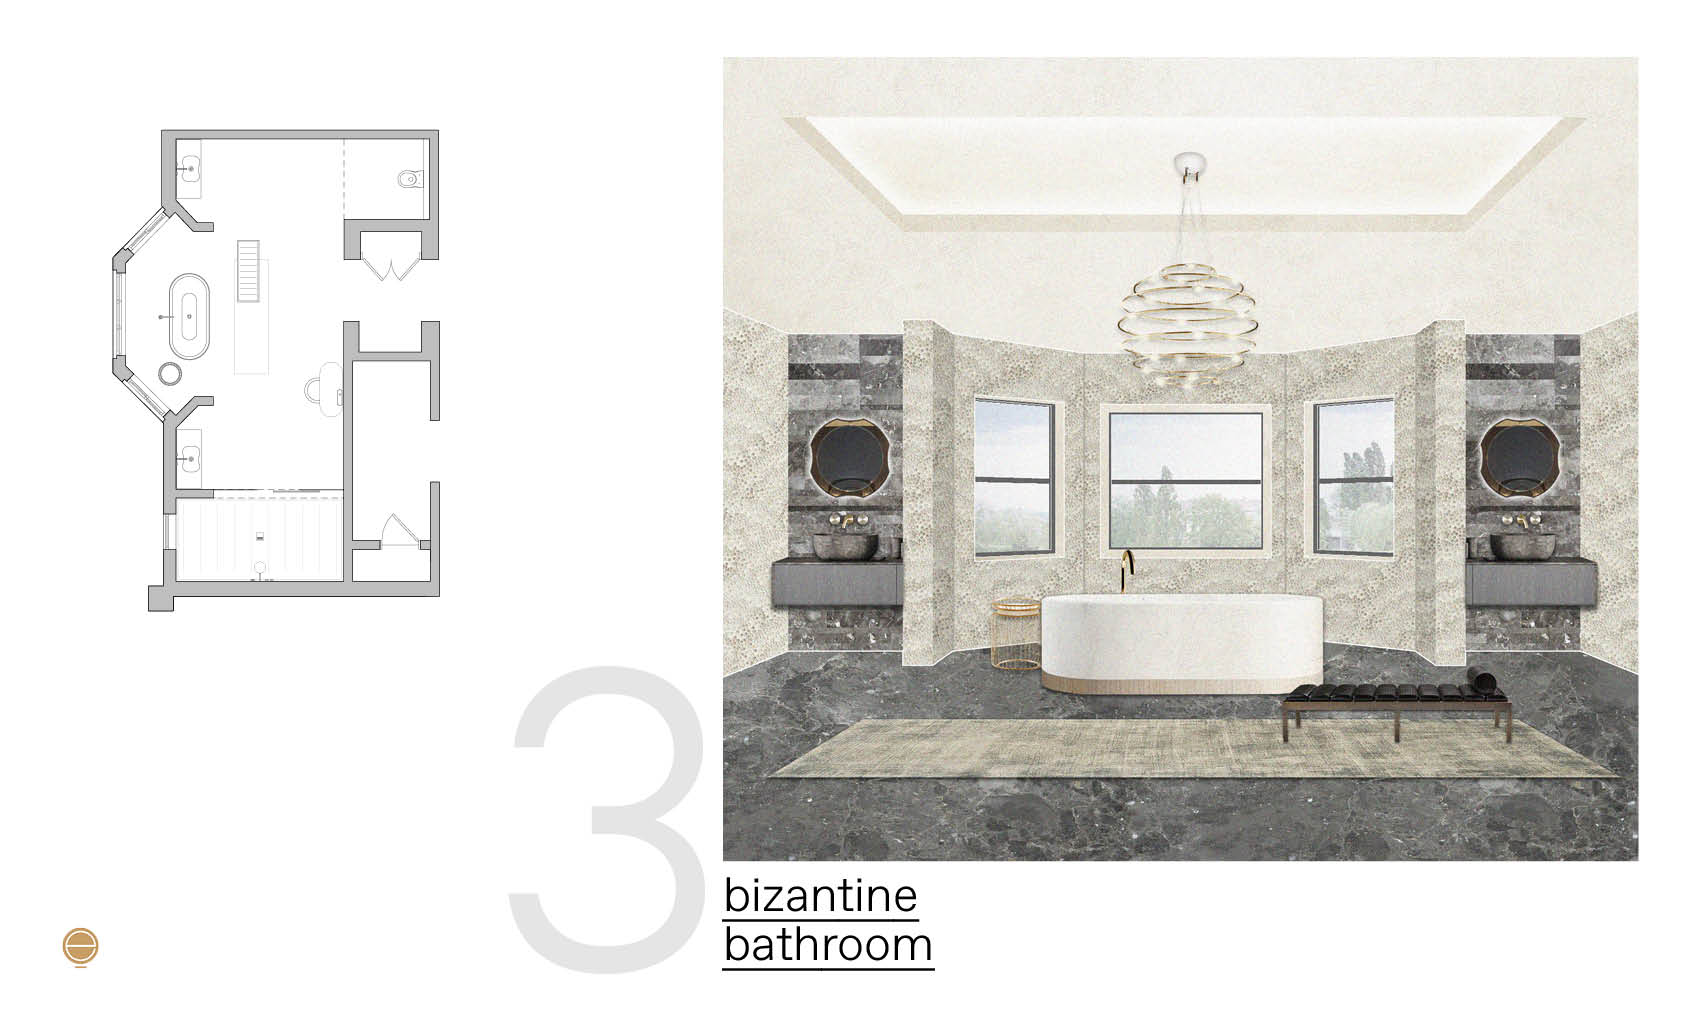 bizantine luxury bathroom design inspiration made by Esperiri